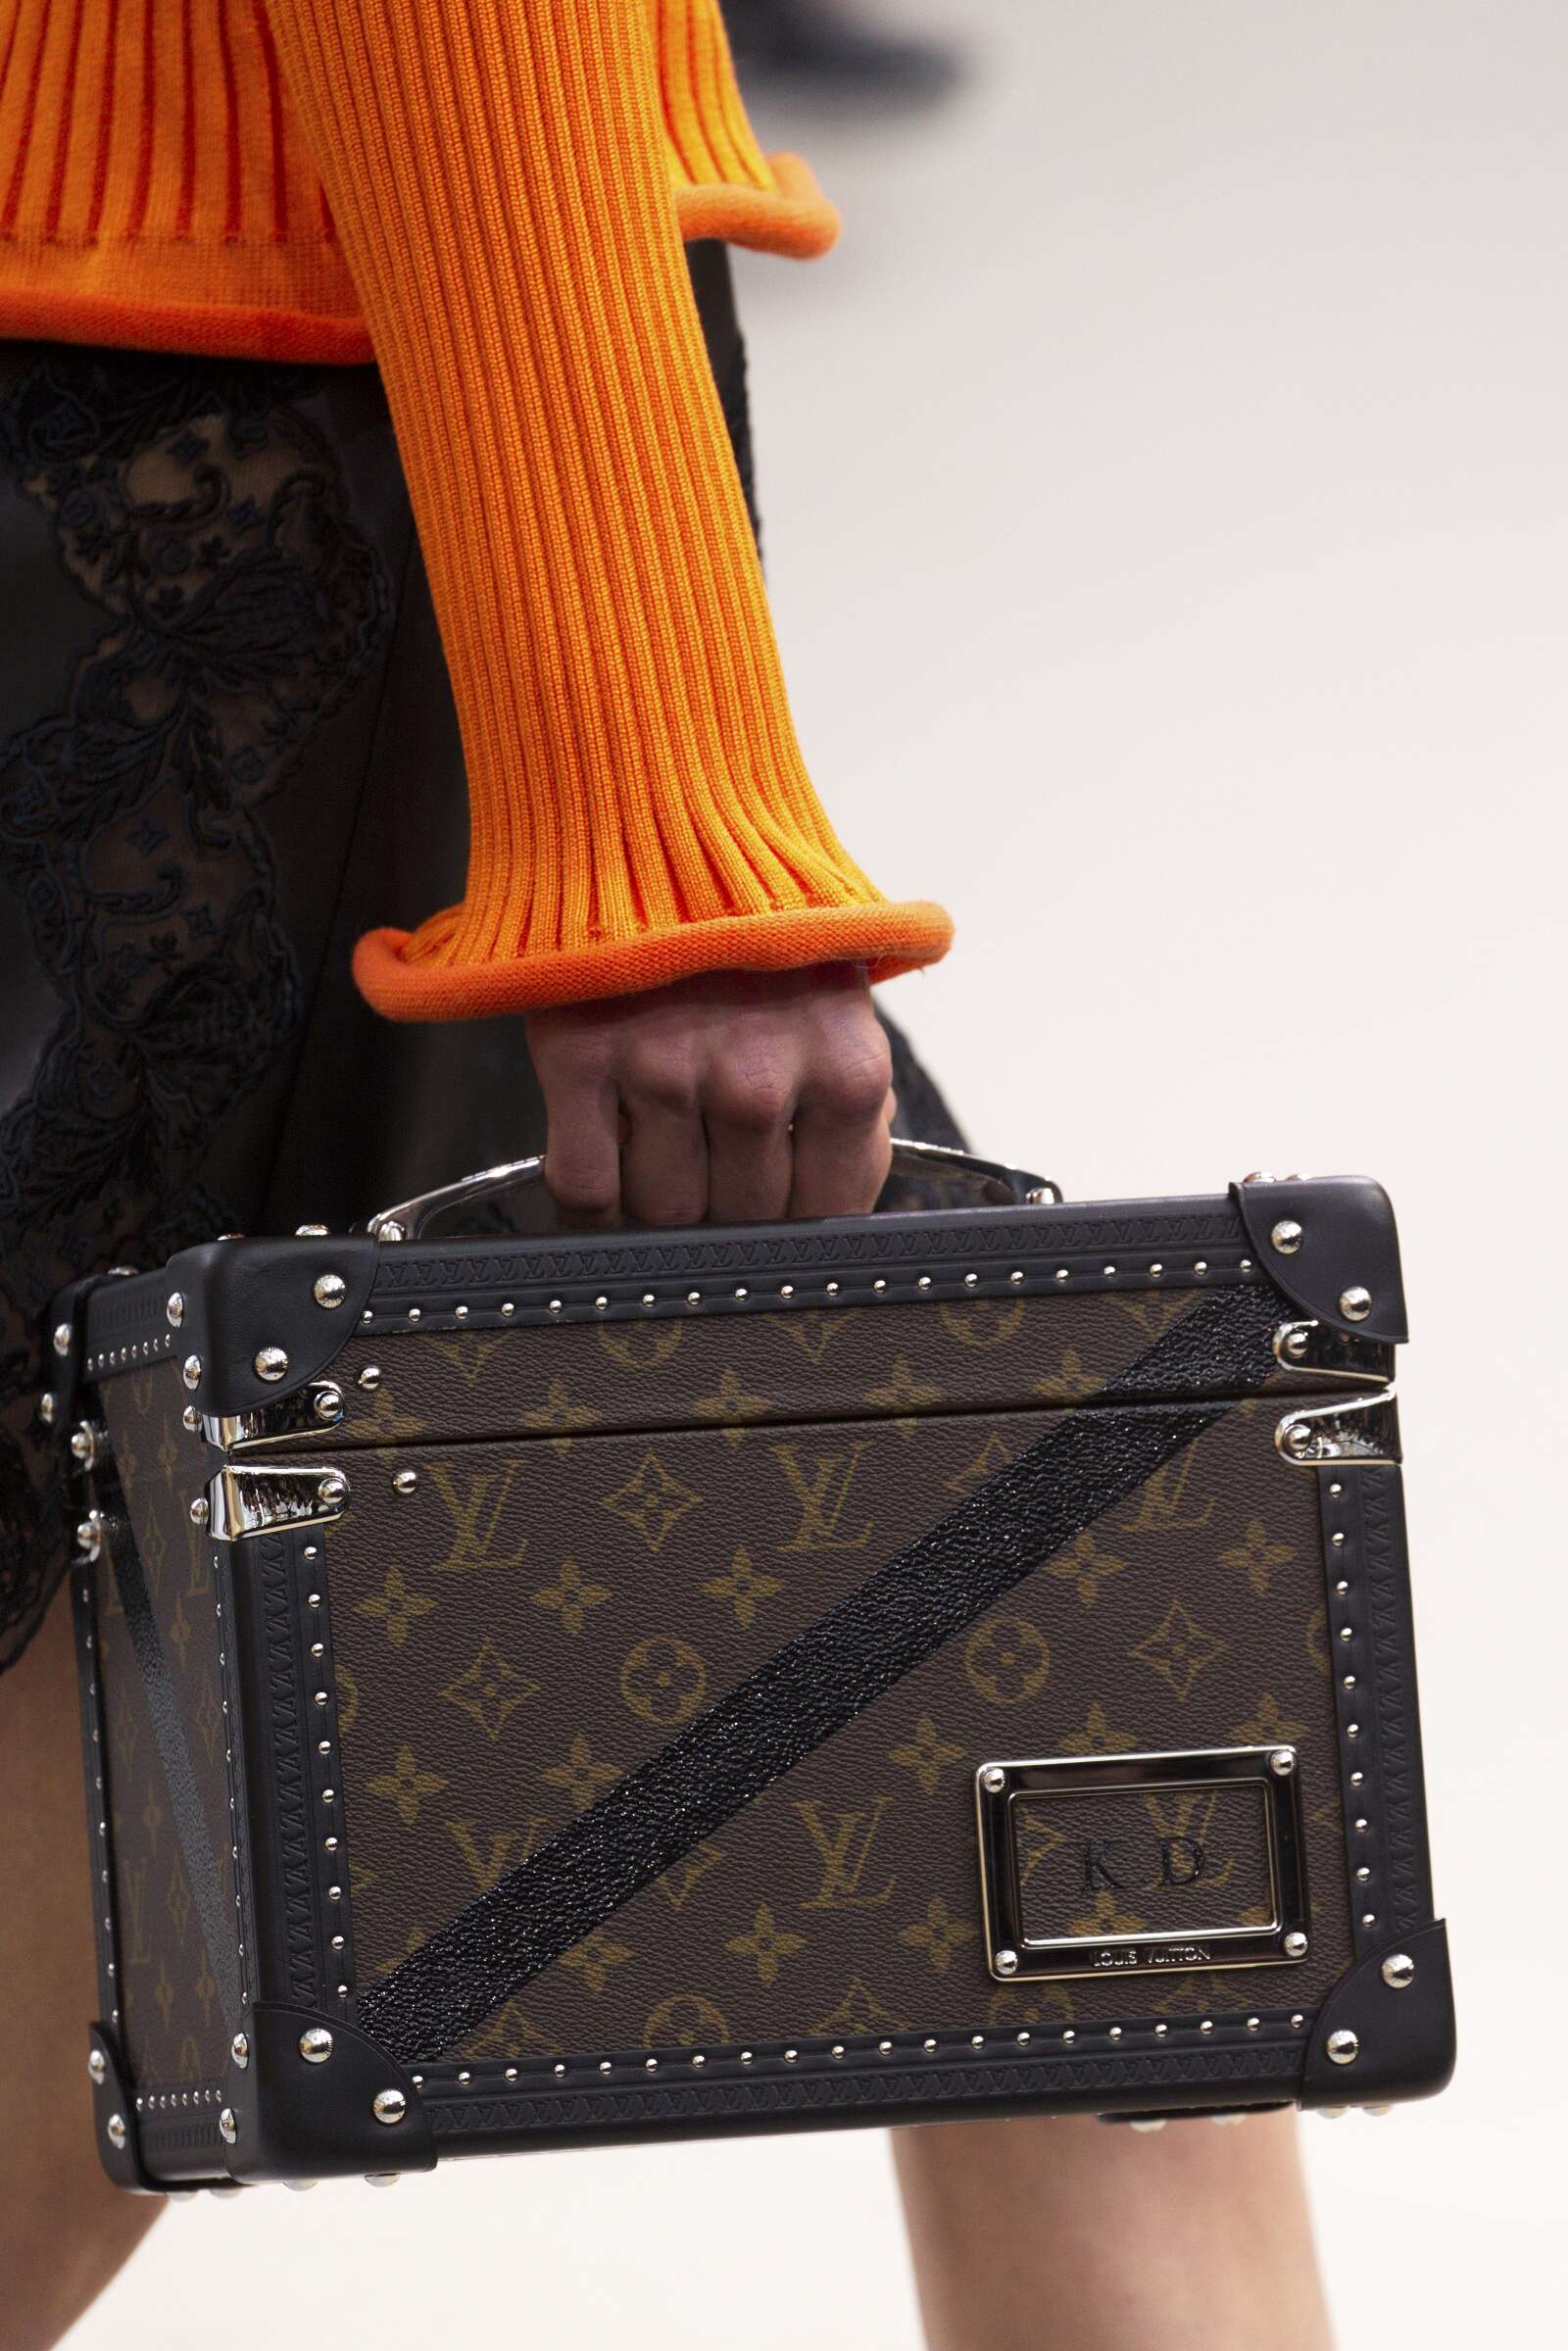 Louis Vuitton Bag Details Collection Fashion Show FW 2015 2016